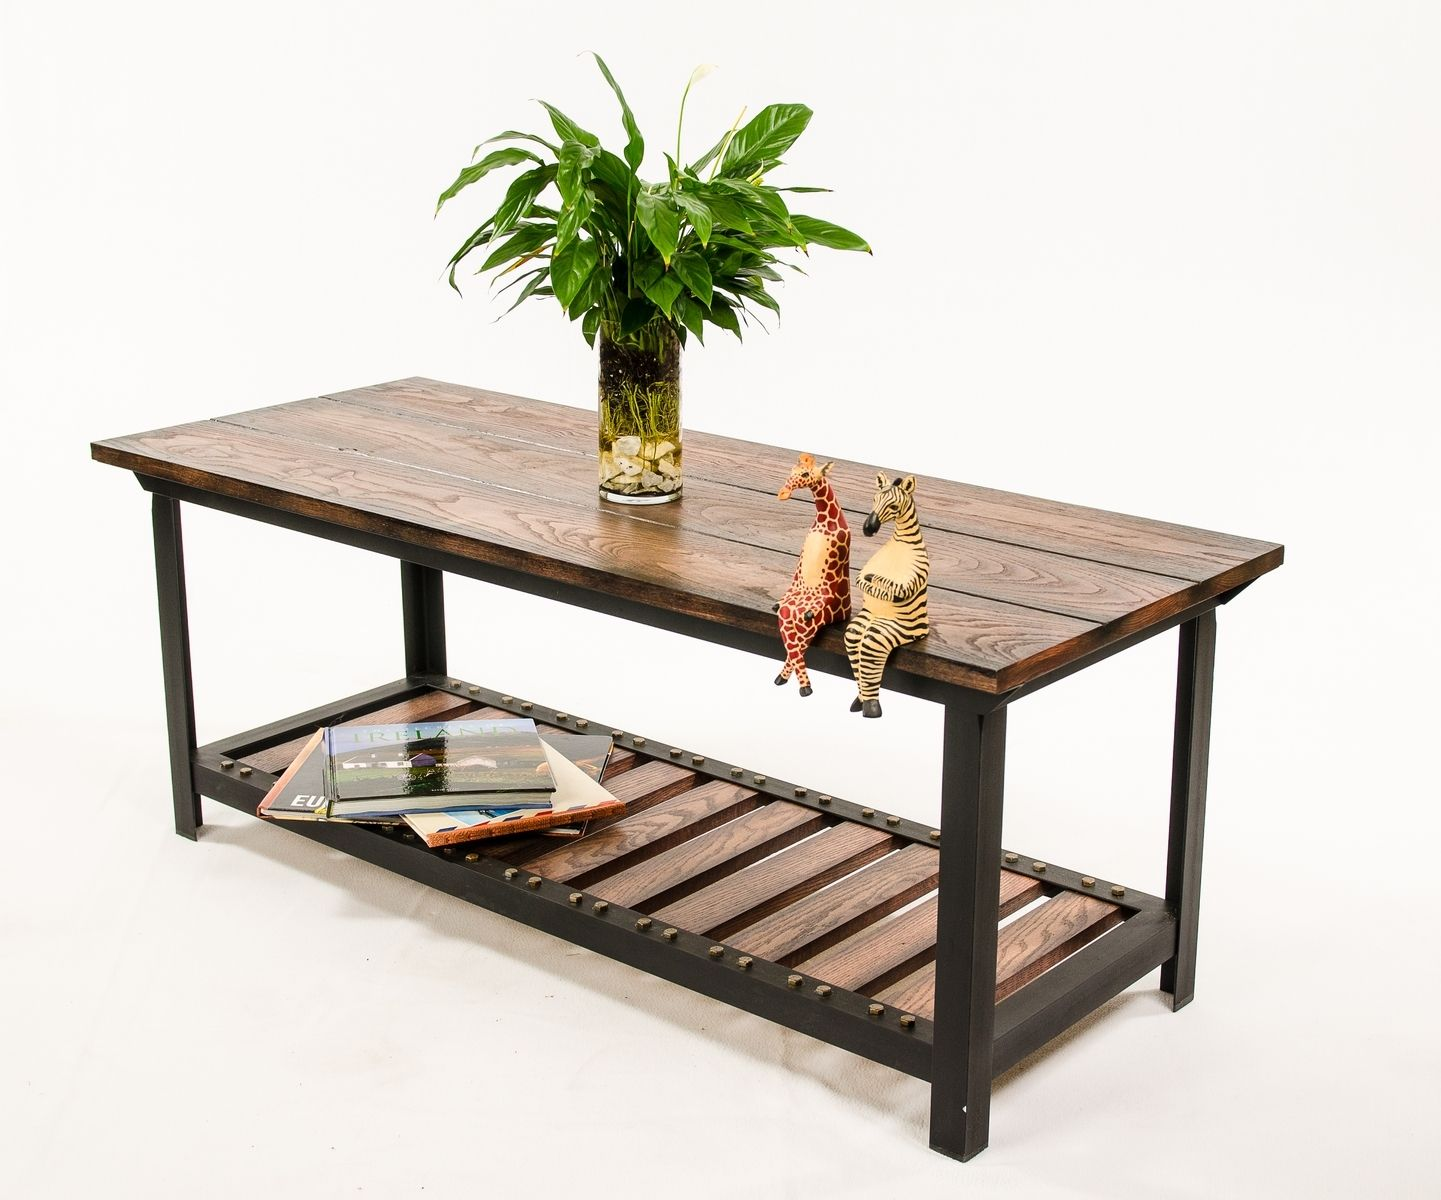 Custom Made Vintage Industrial Style Coffee Table By Against The Grain